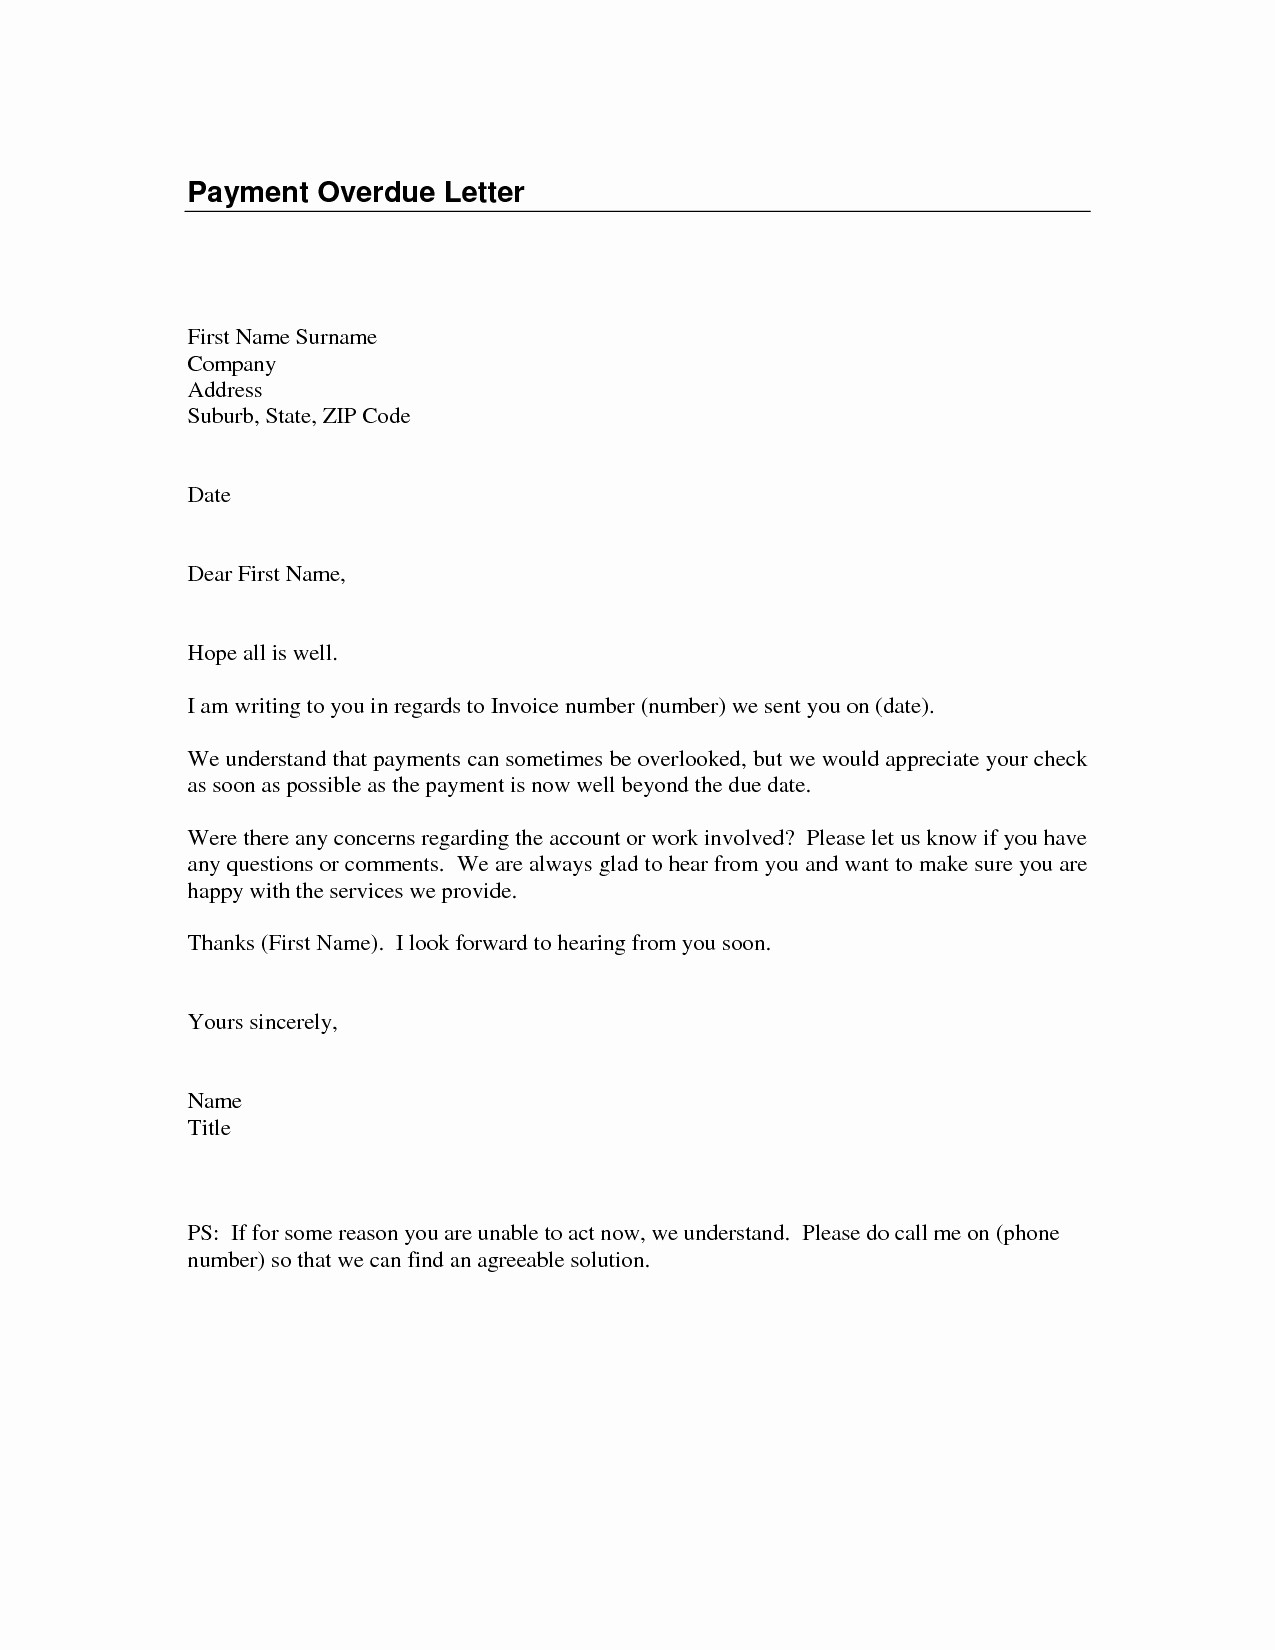 Past Due Invoice Letter Template - Past Due Letter Template Fresh Past Due Invoice Letter to Customer